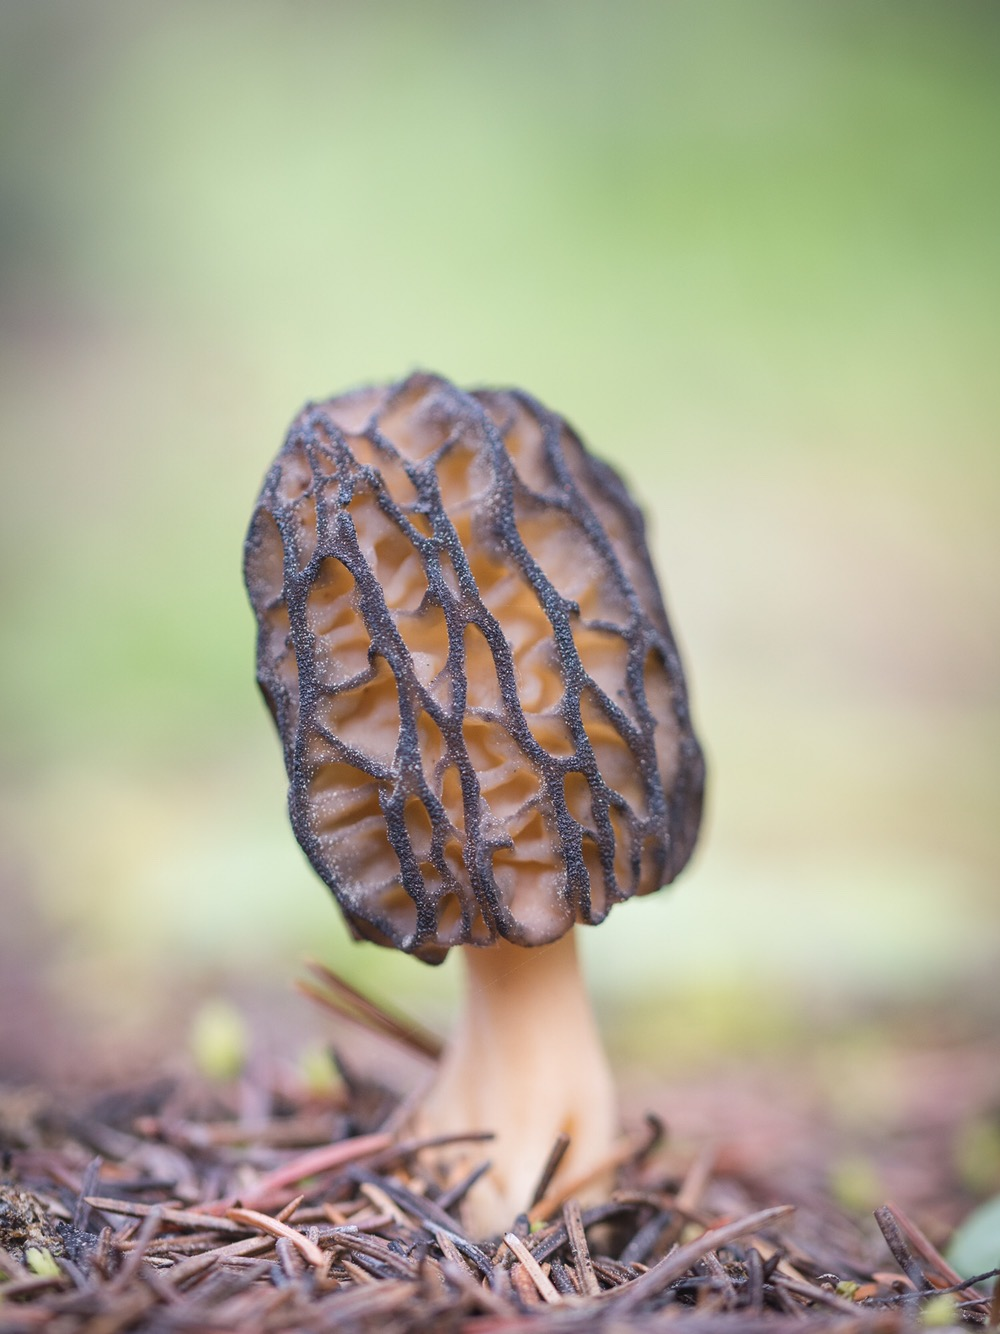 Fungi mushrooms Luke Mikler photography mycology